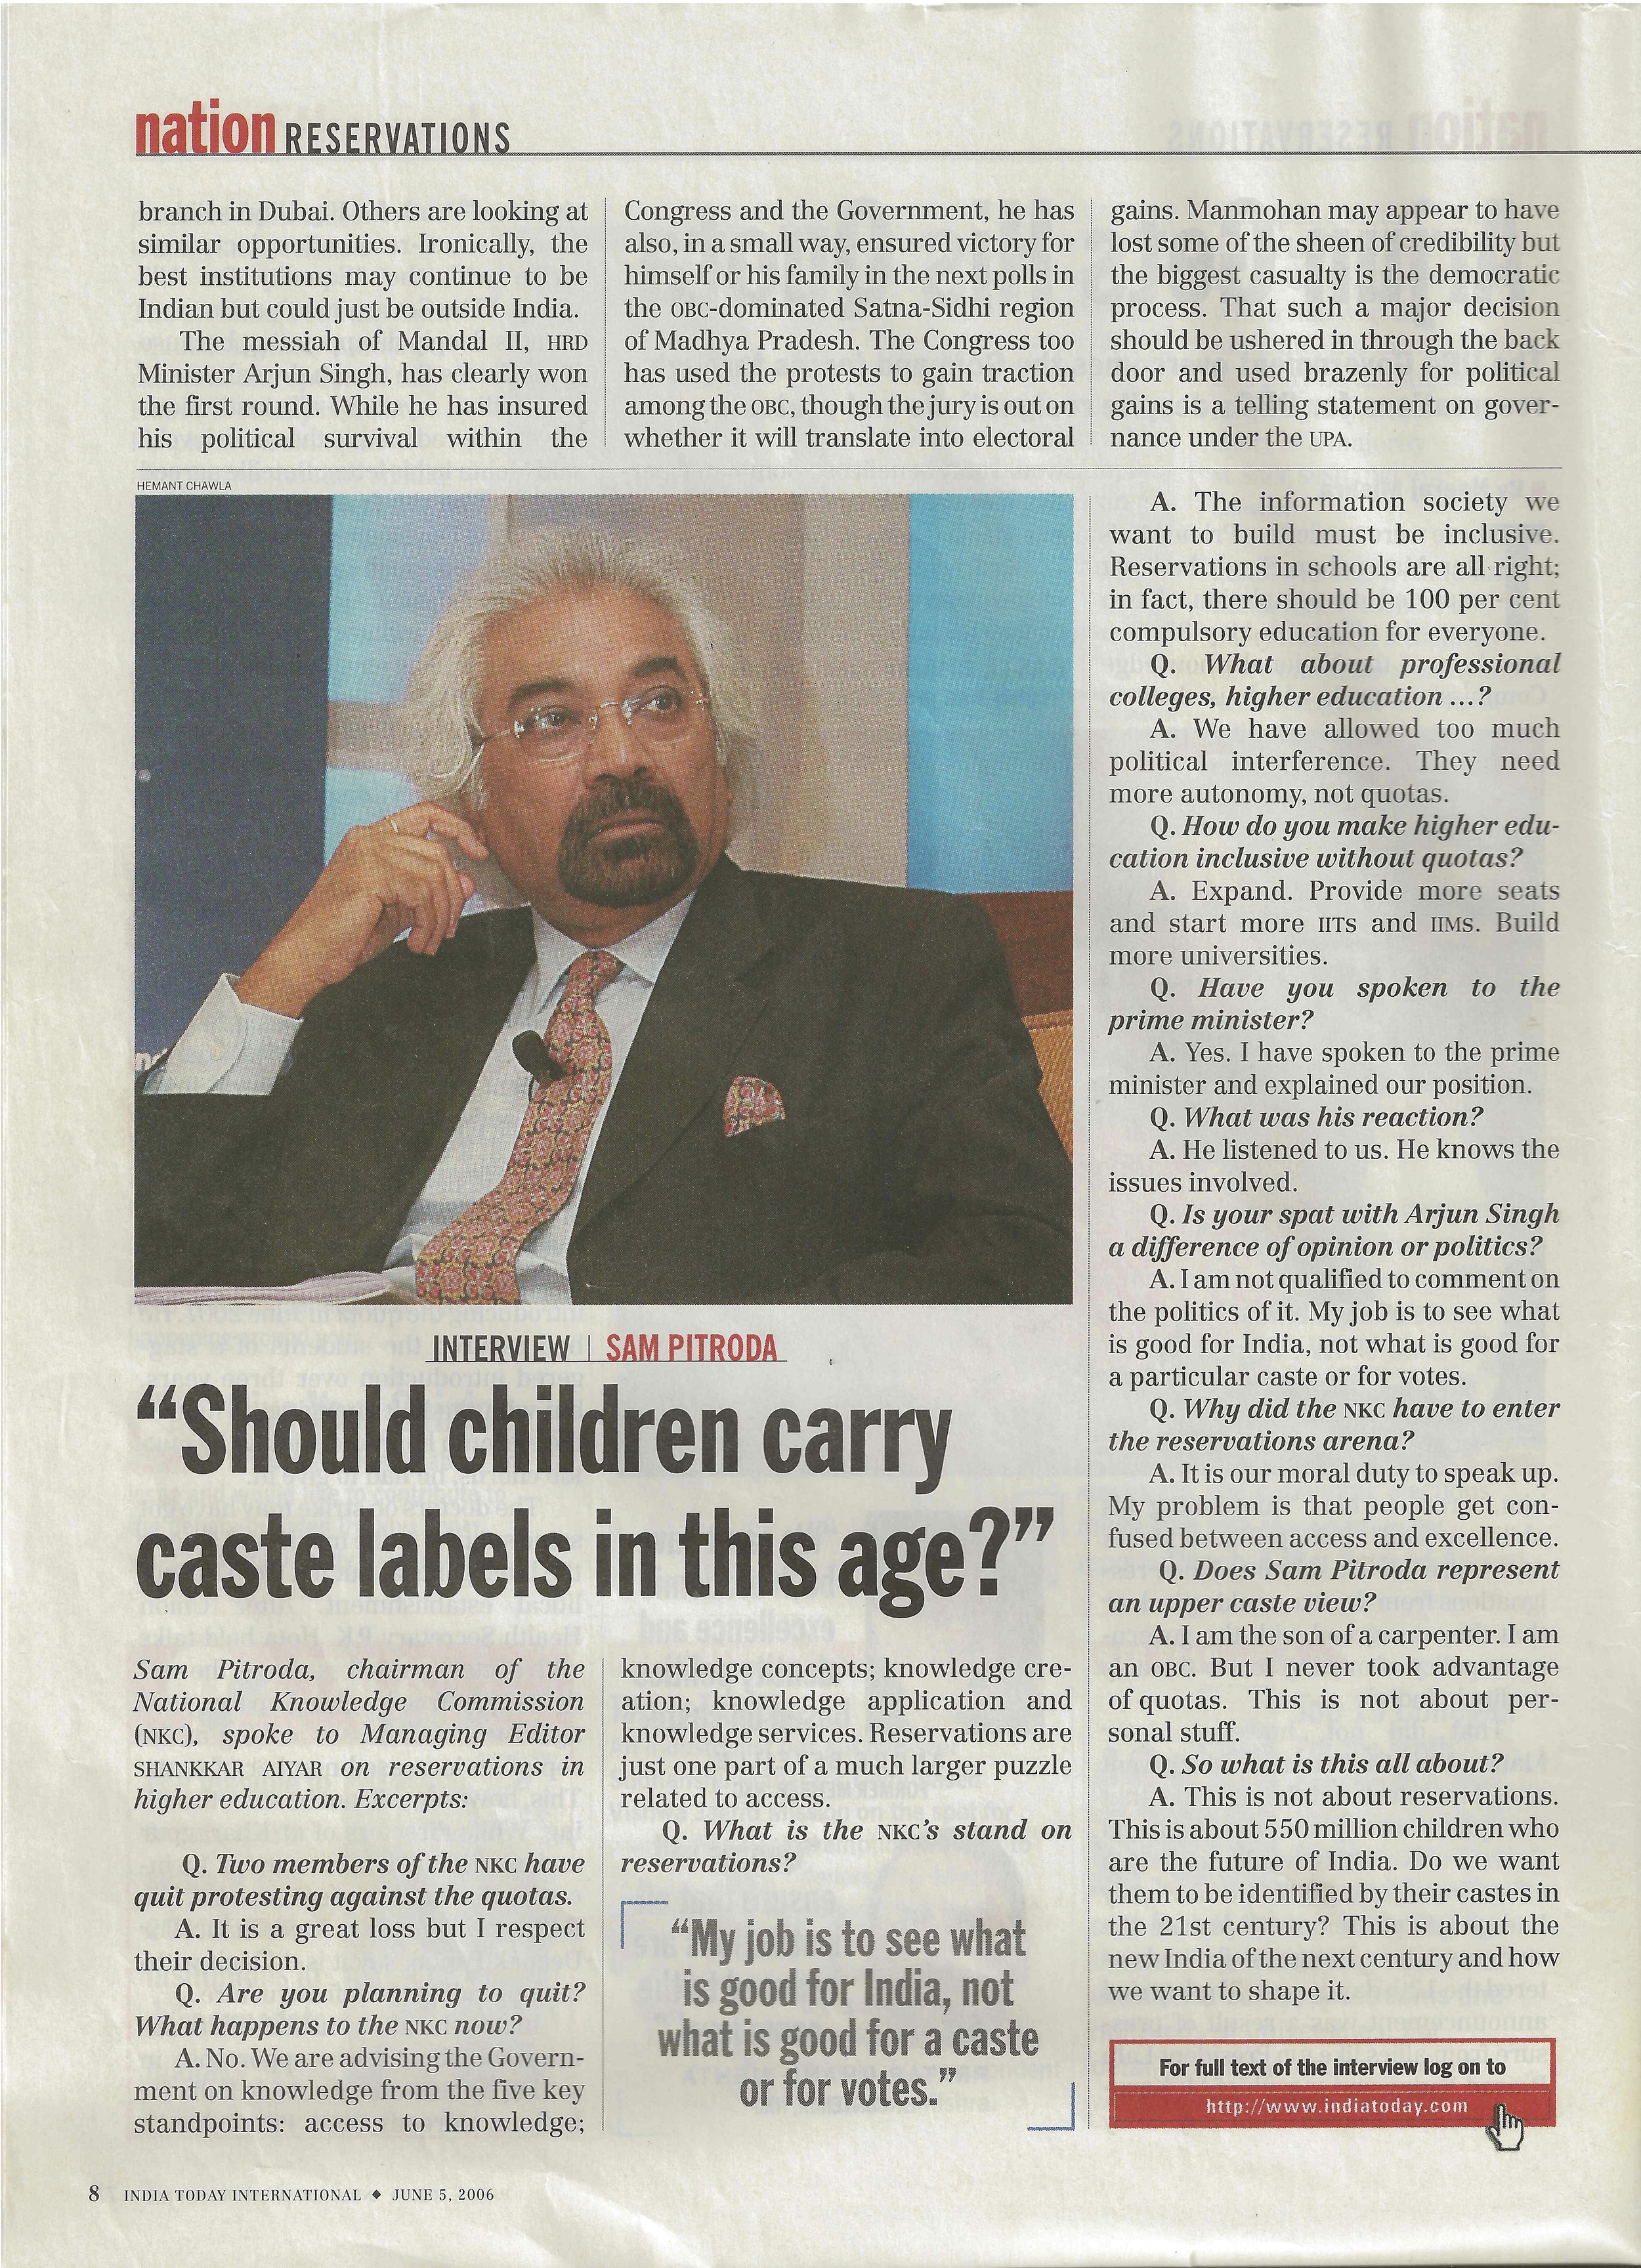 """Should Children Carry Caste Labels in This Age,?"" India Today, 2006"